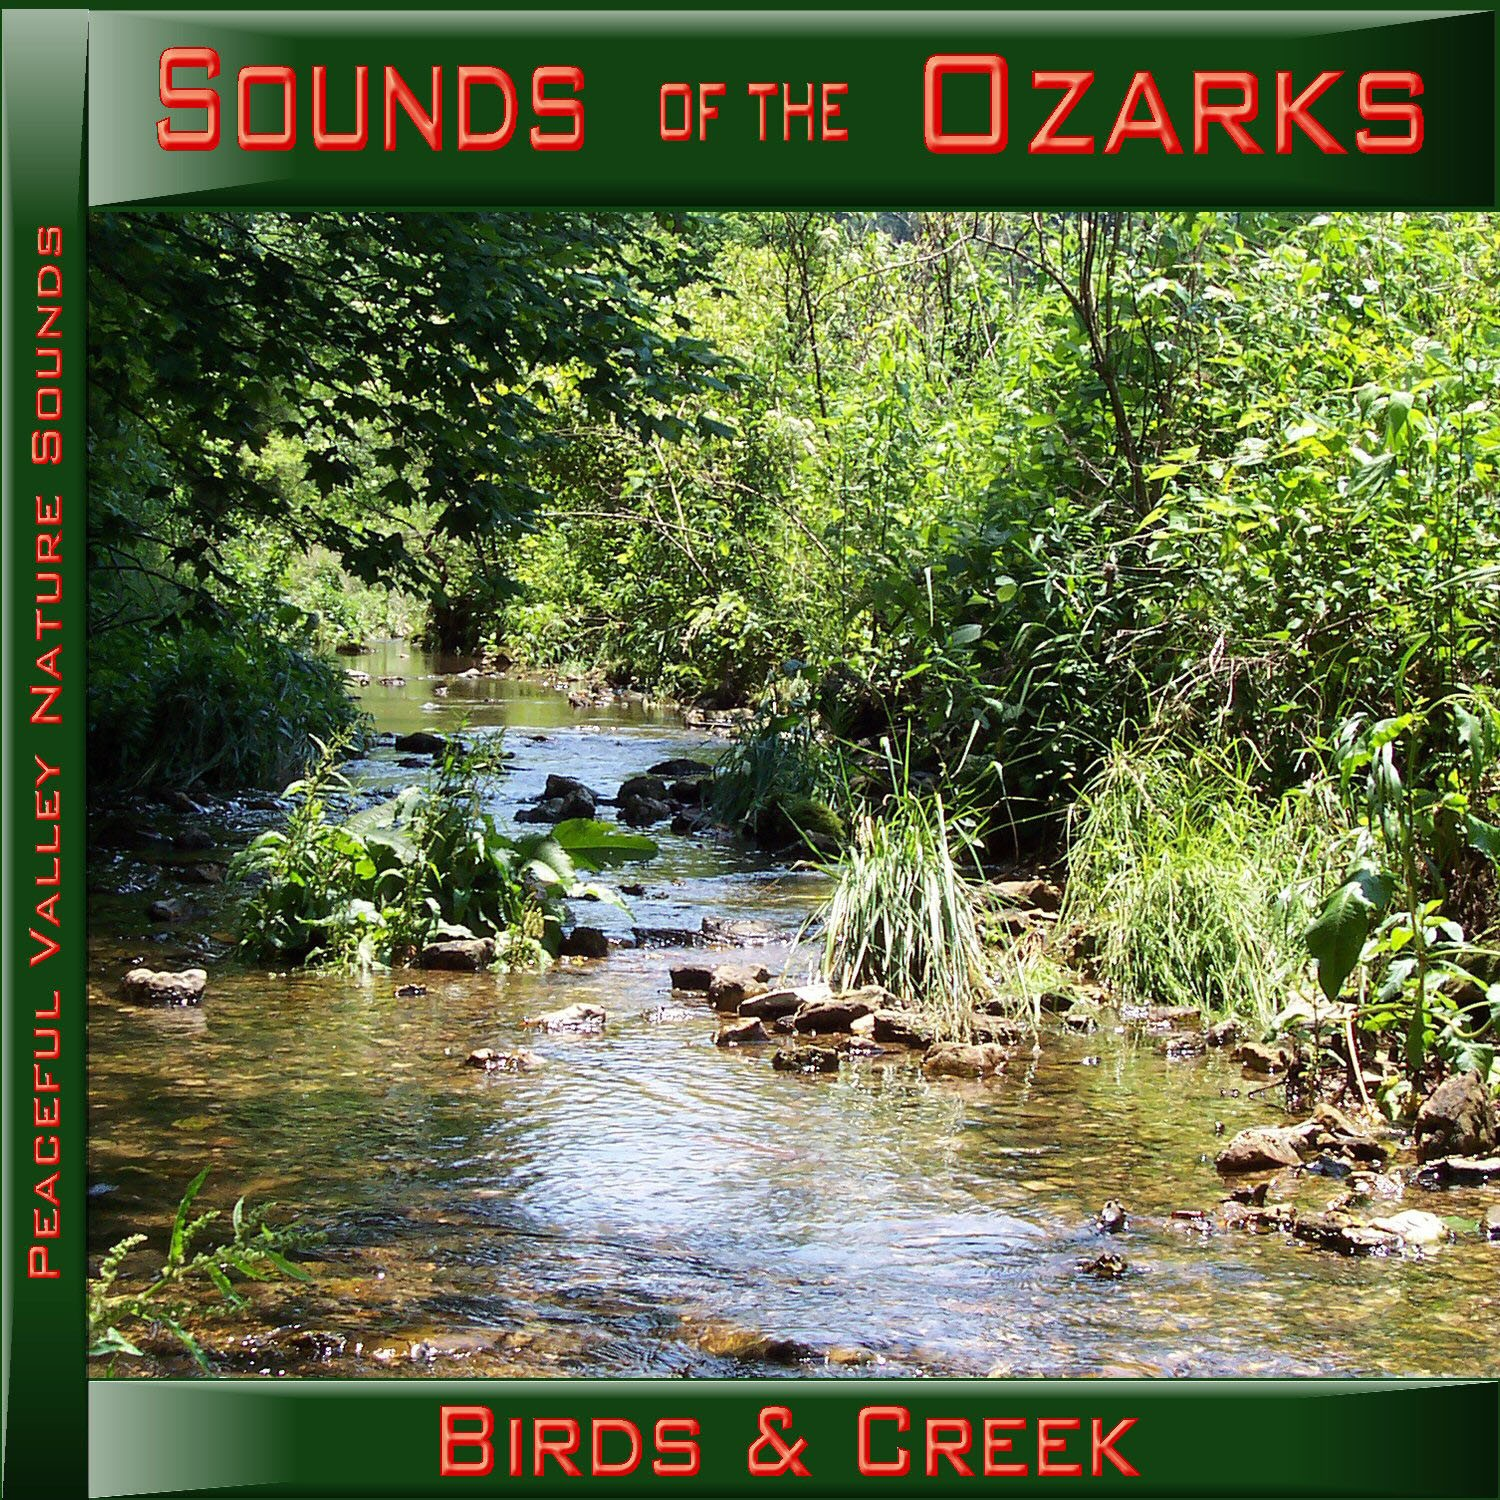 Sounds of the Ozarks Birds & Creek CD